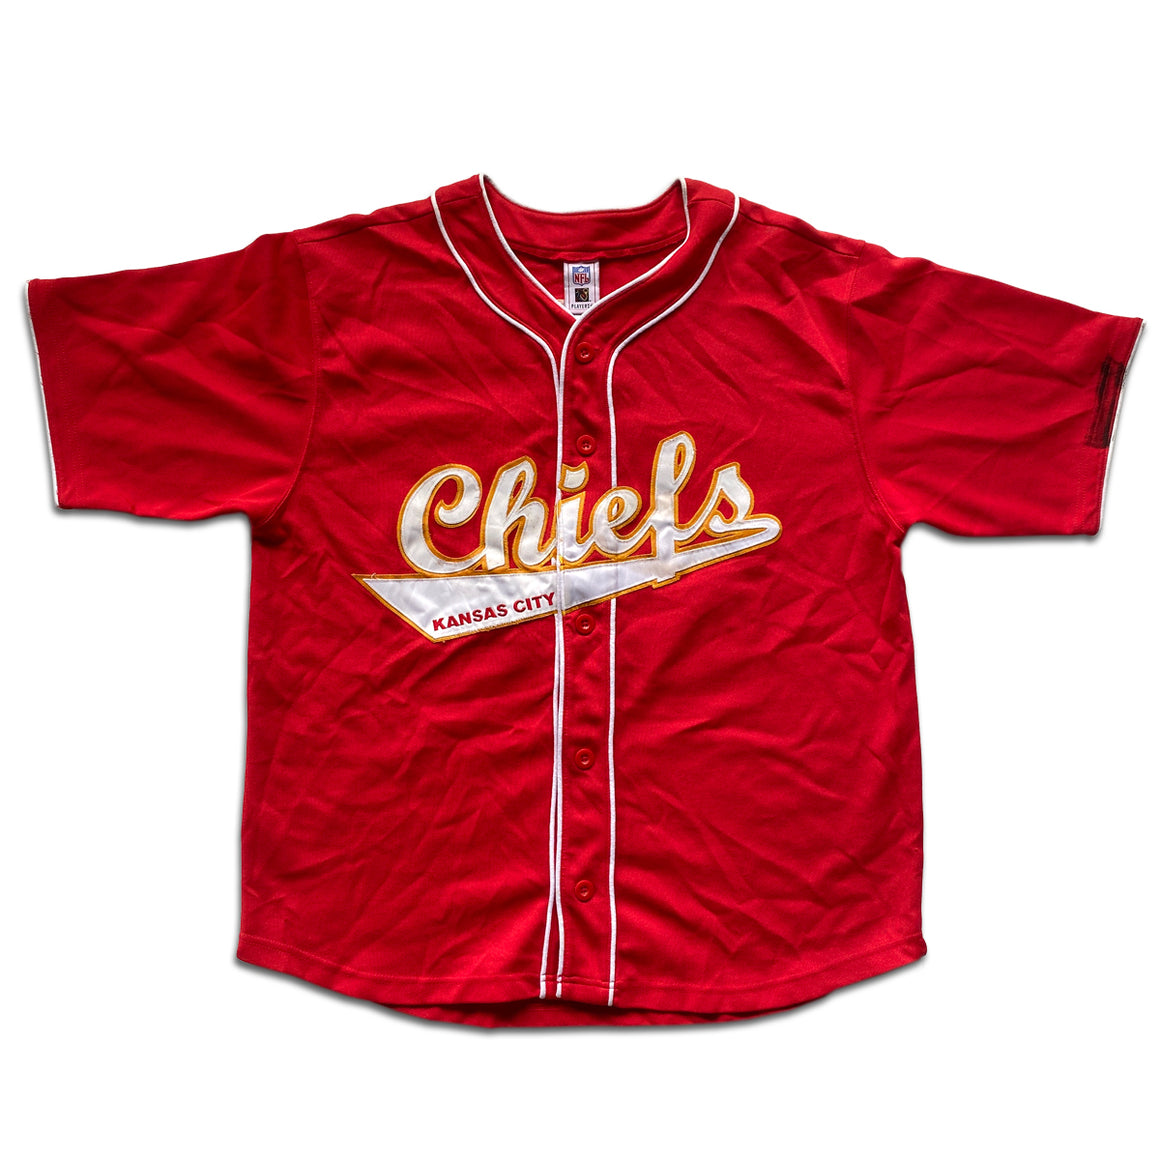 WESTSIDE STOREY VINTAGE | LARRY JOHNSON KC CHIEFS BASEBALL JERSEY RED